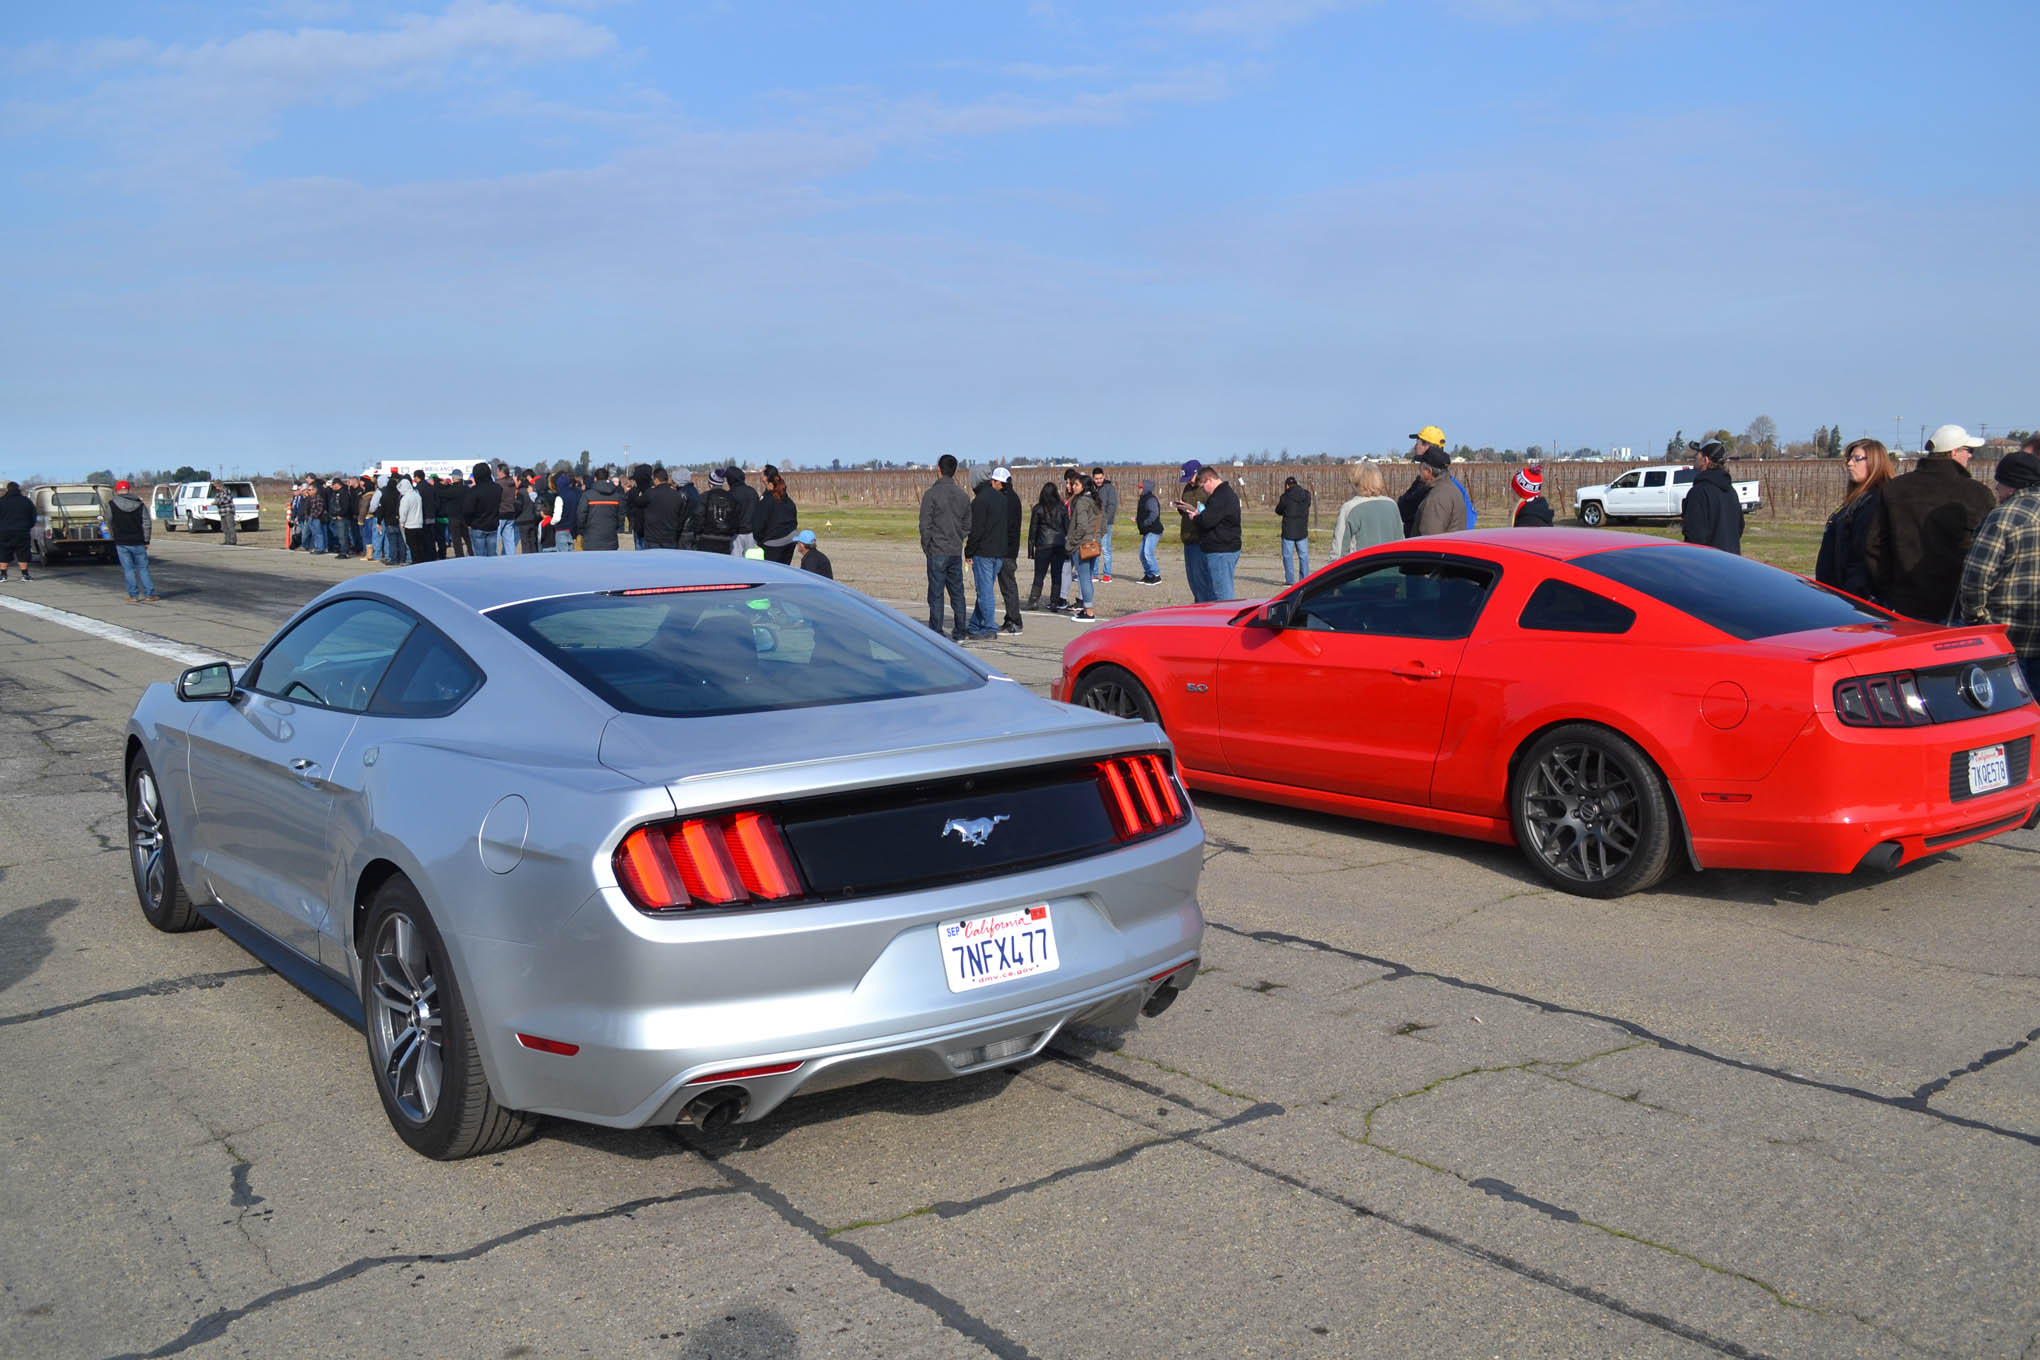 It wasn't just old muscle at Kingdon, as evidenced by the grudge race between these two new Mustangs. There were also a few Corvettes, GTOs, and Cadillacs thrown into the mix.